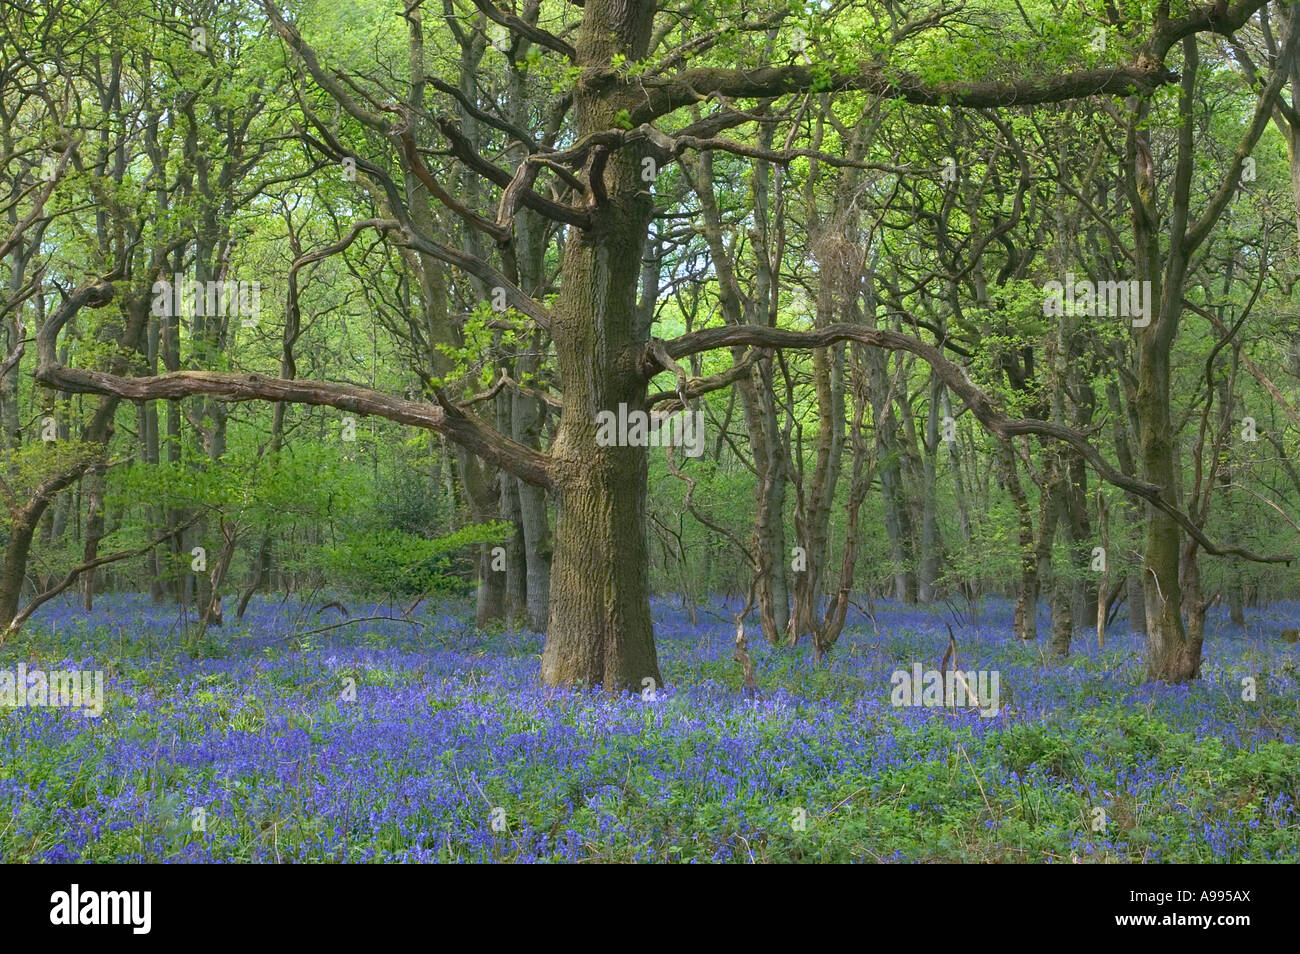 An old Oak tree in an English bluebell wood - Stock Image